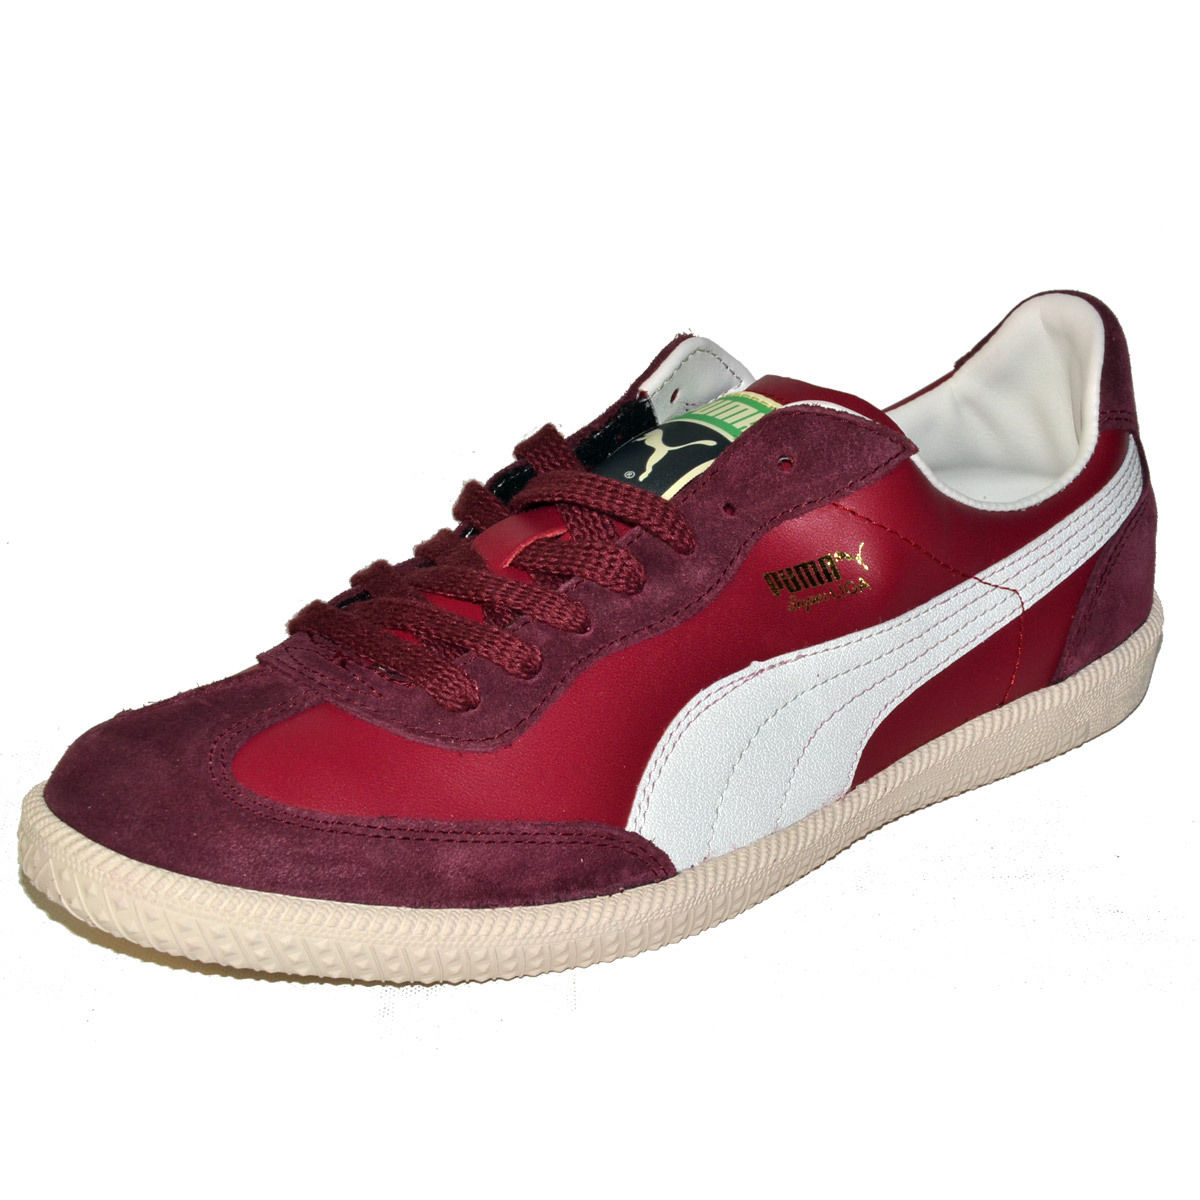 b366aae2075 Details about PUMA Super Liga OG Shoes Retro Style Trainers Sneakers